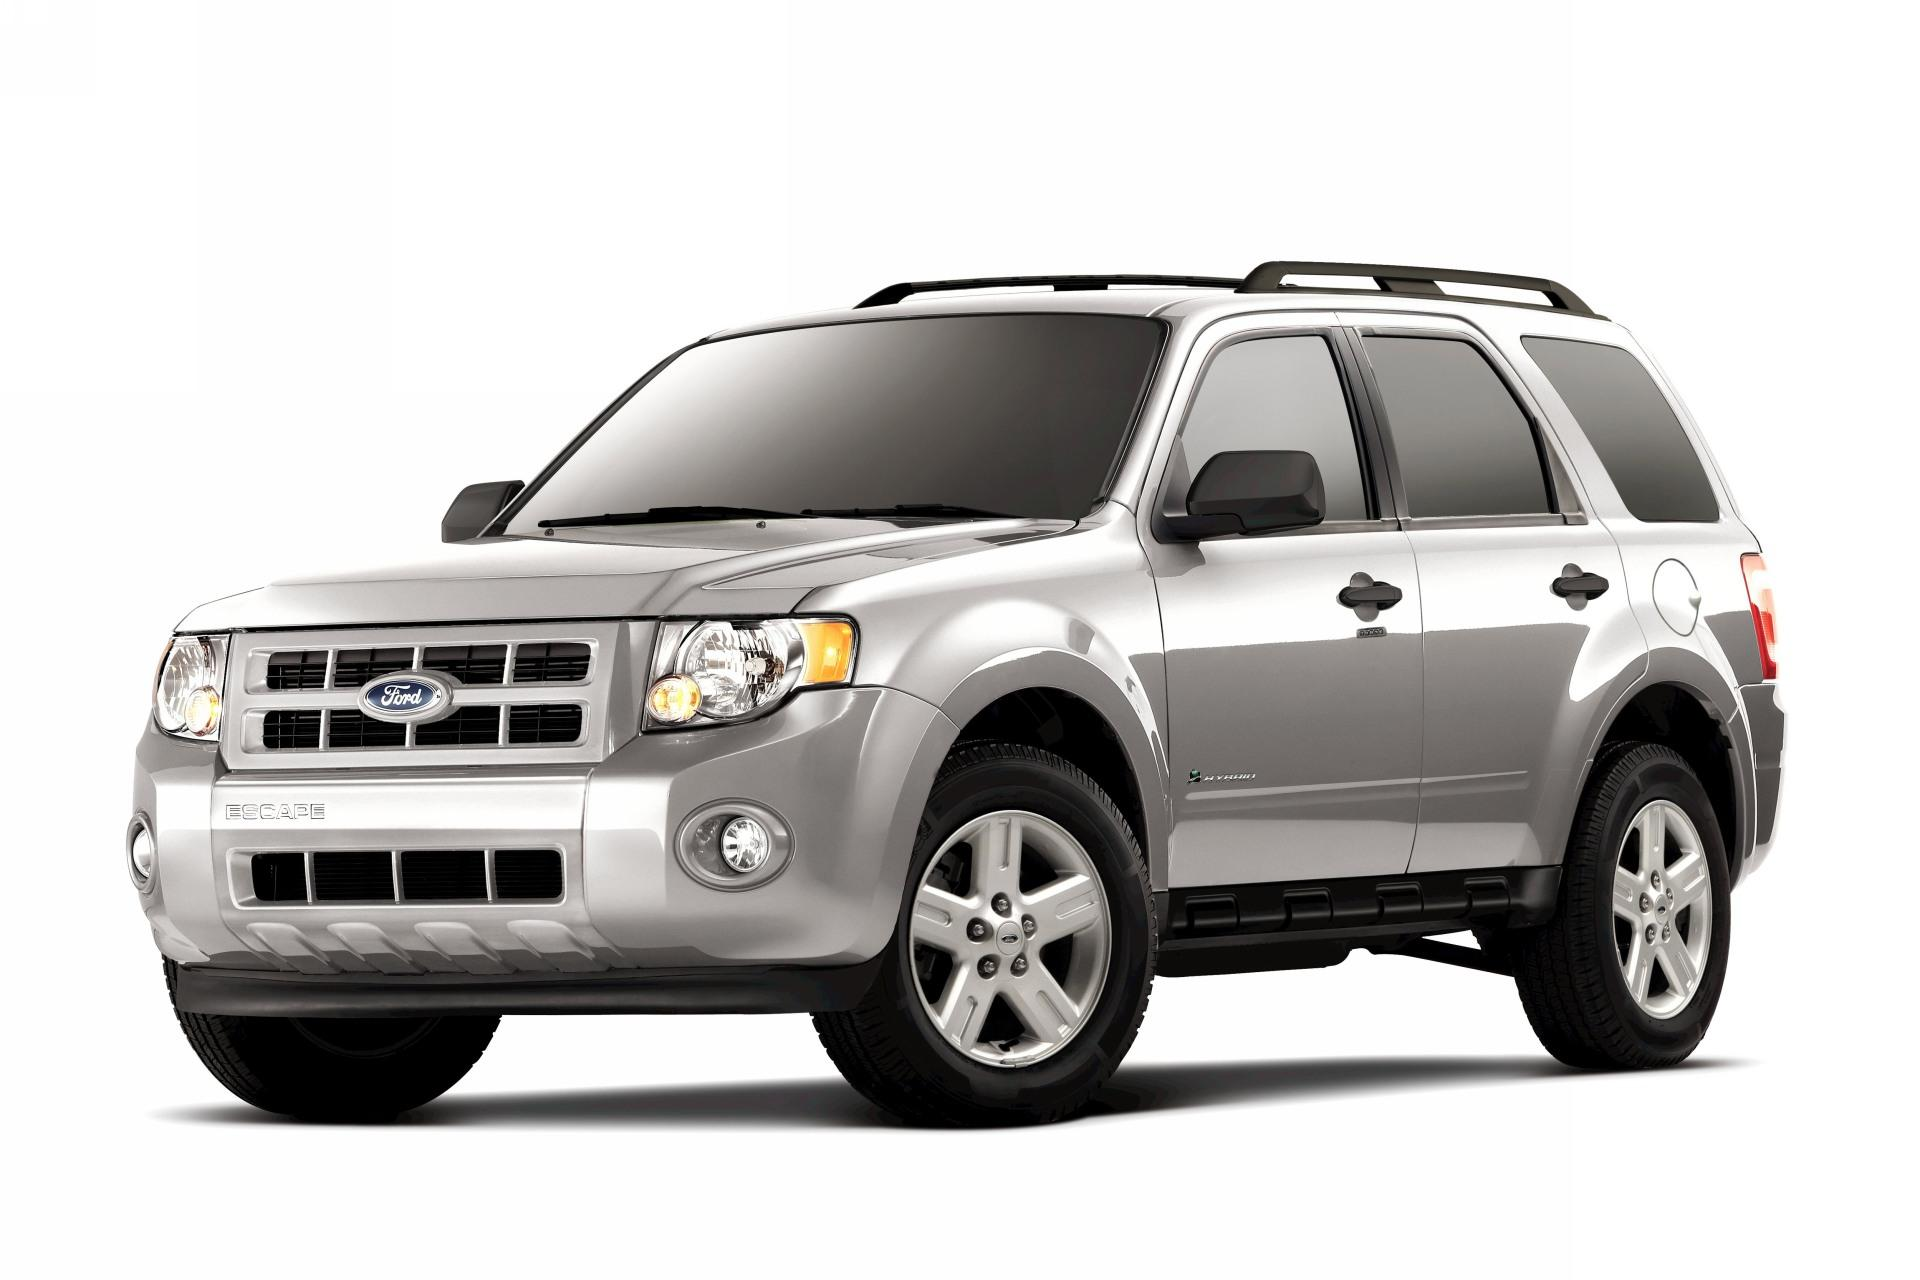 2010 ford escape hybrid news and information. Black Bedroom Furniture Sets. Home Design Ideas